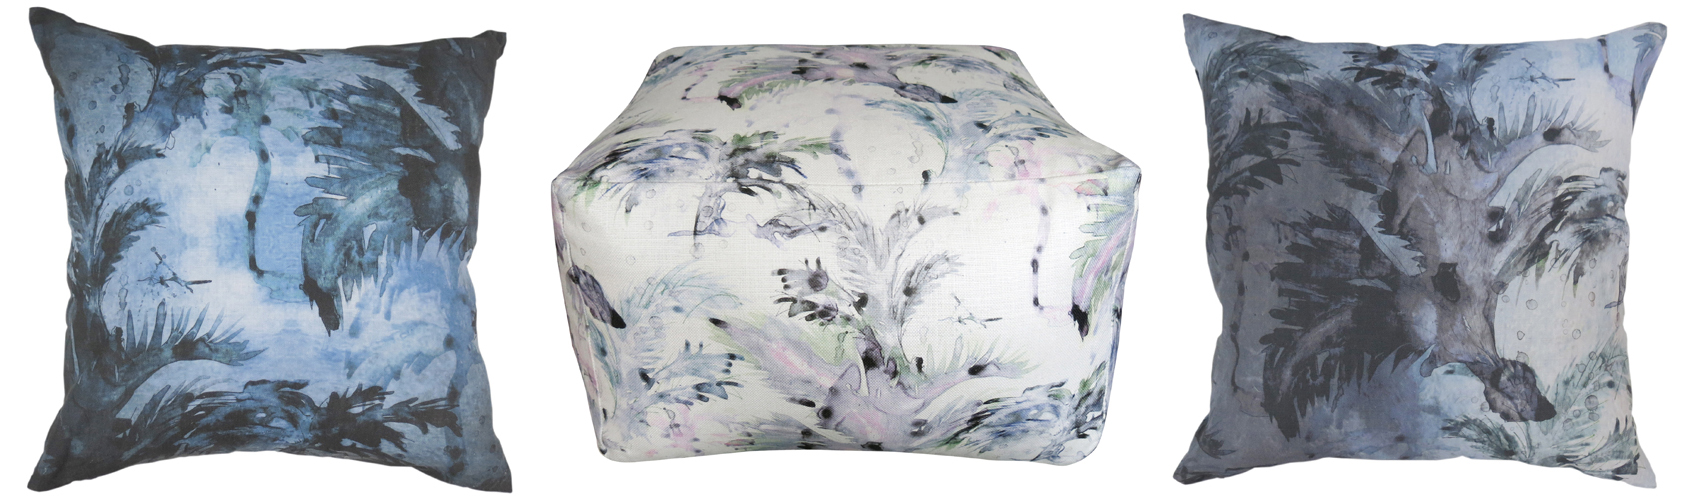 cocos_pillows_and_pouf